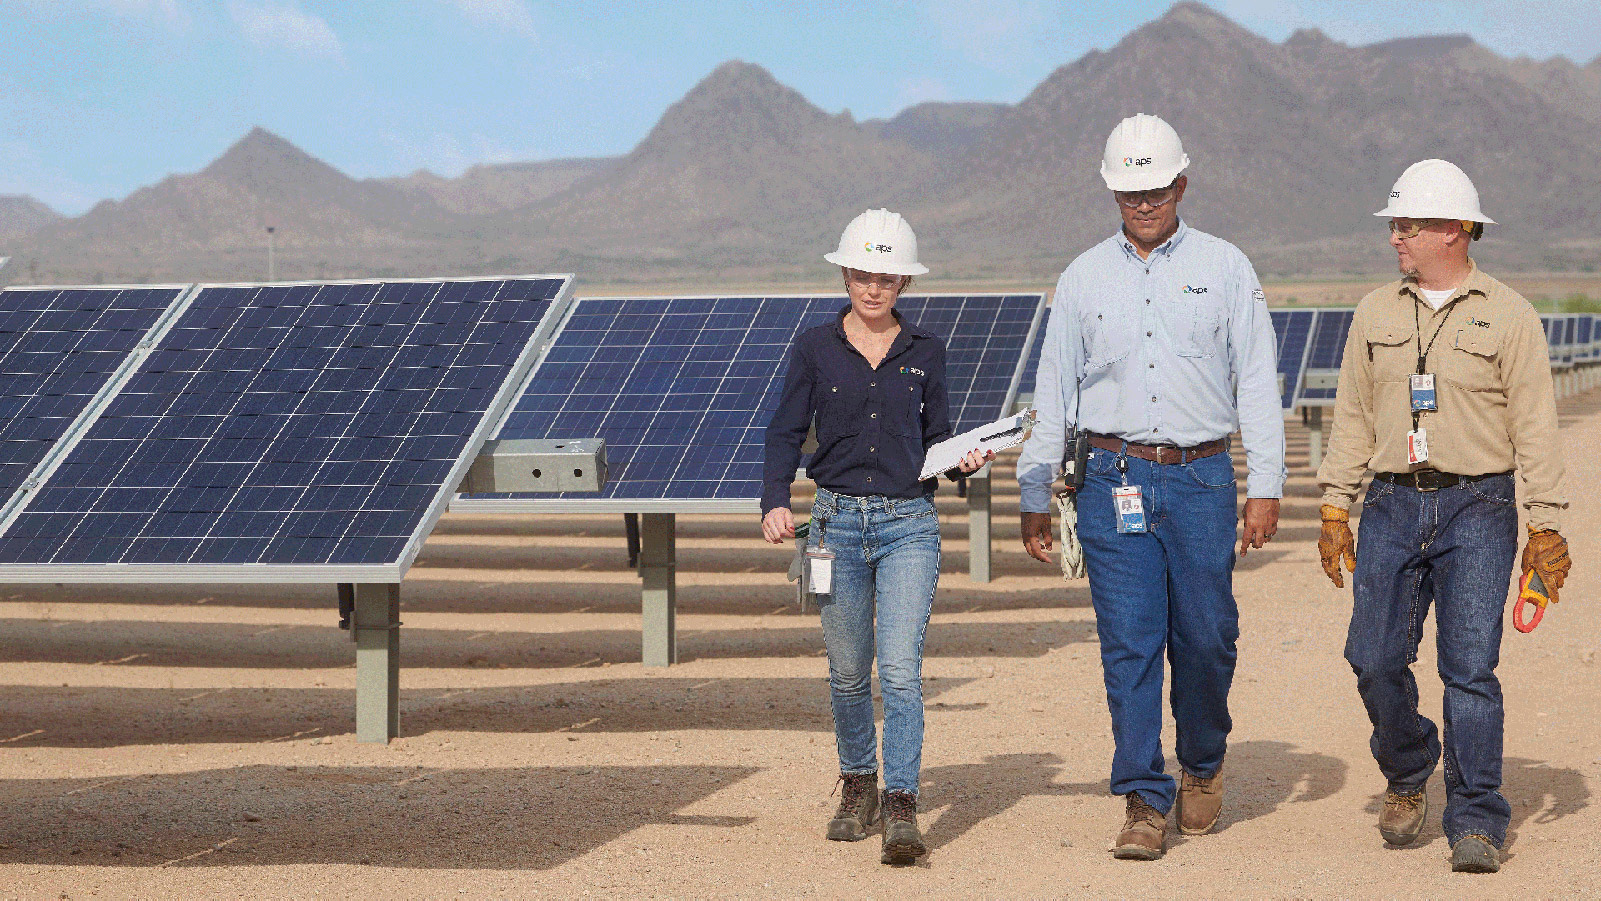 Three APS employees talking and walking through a solar field.